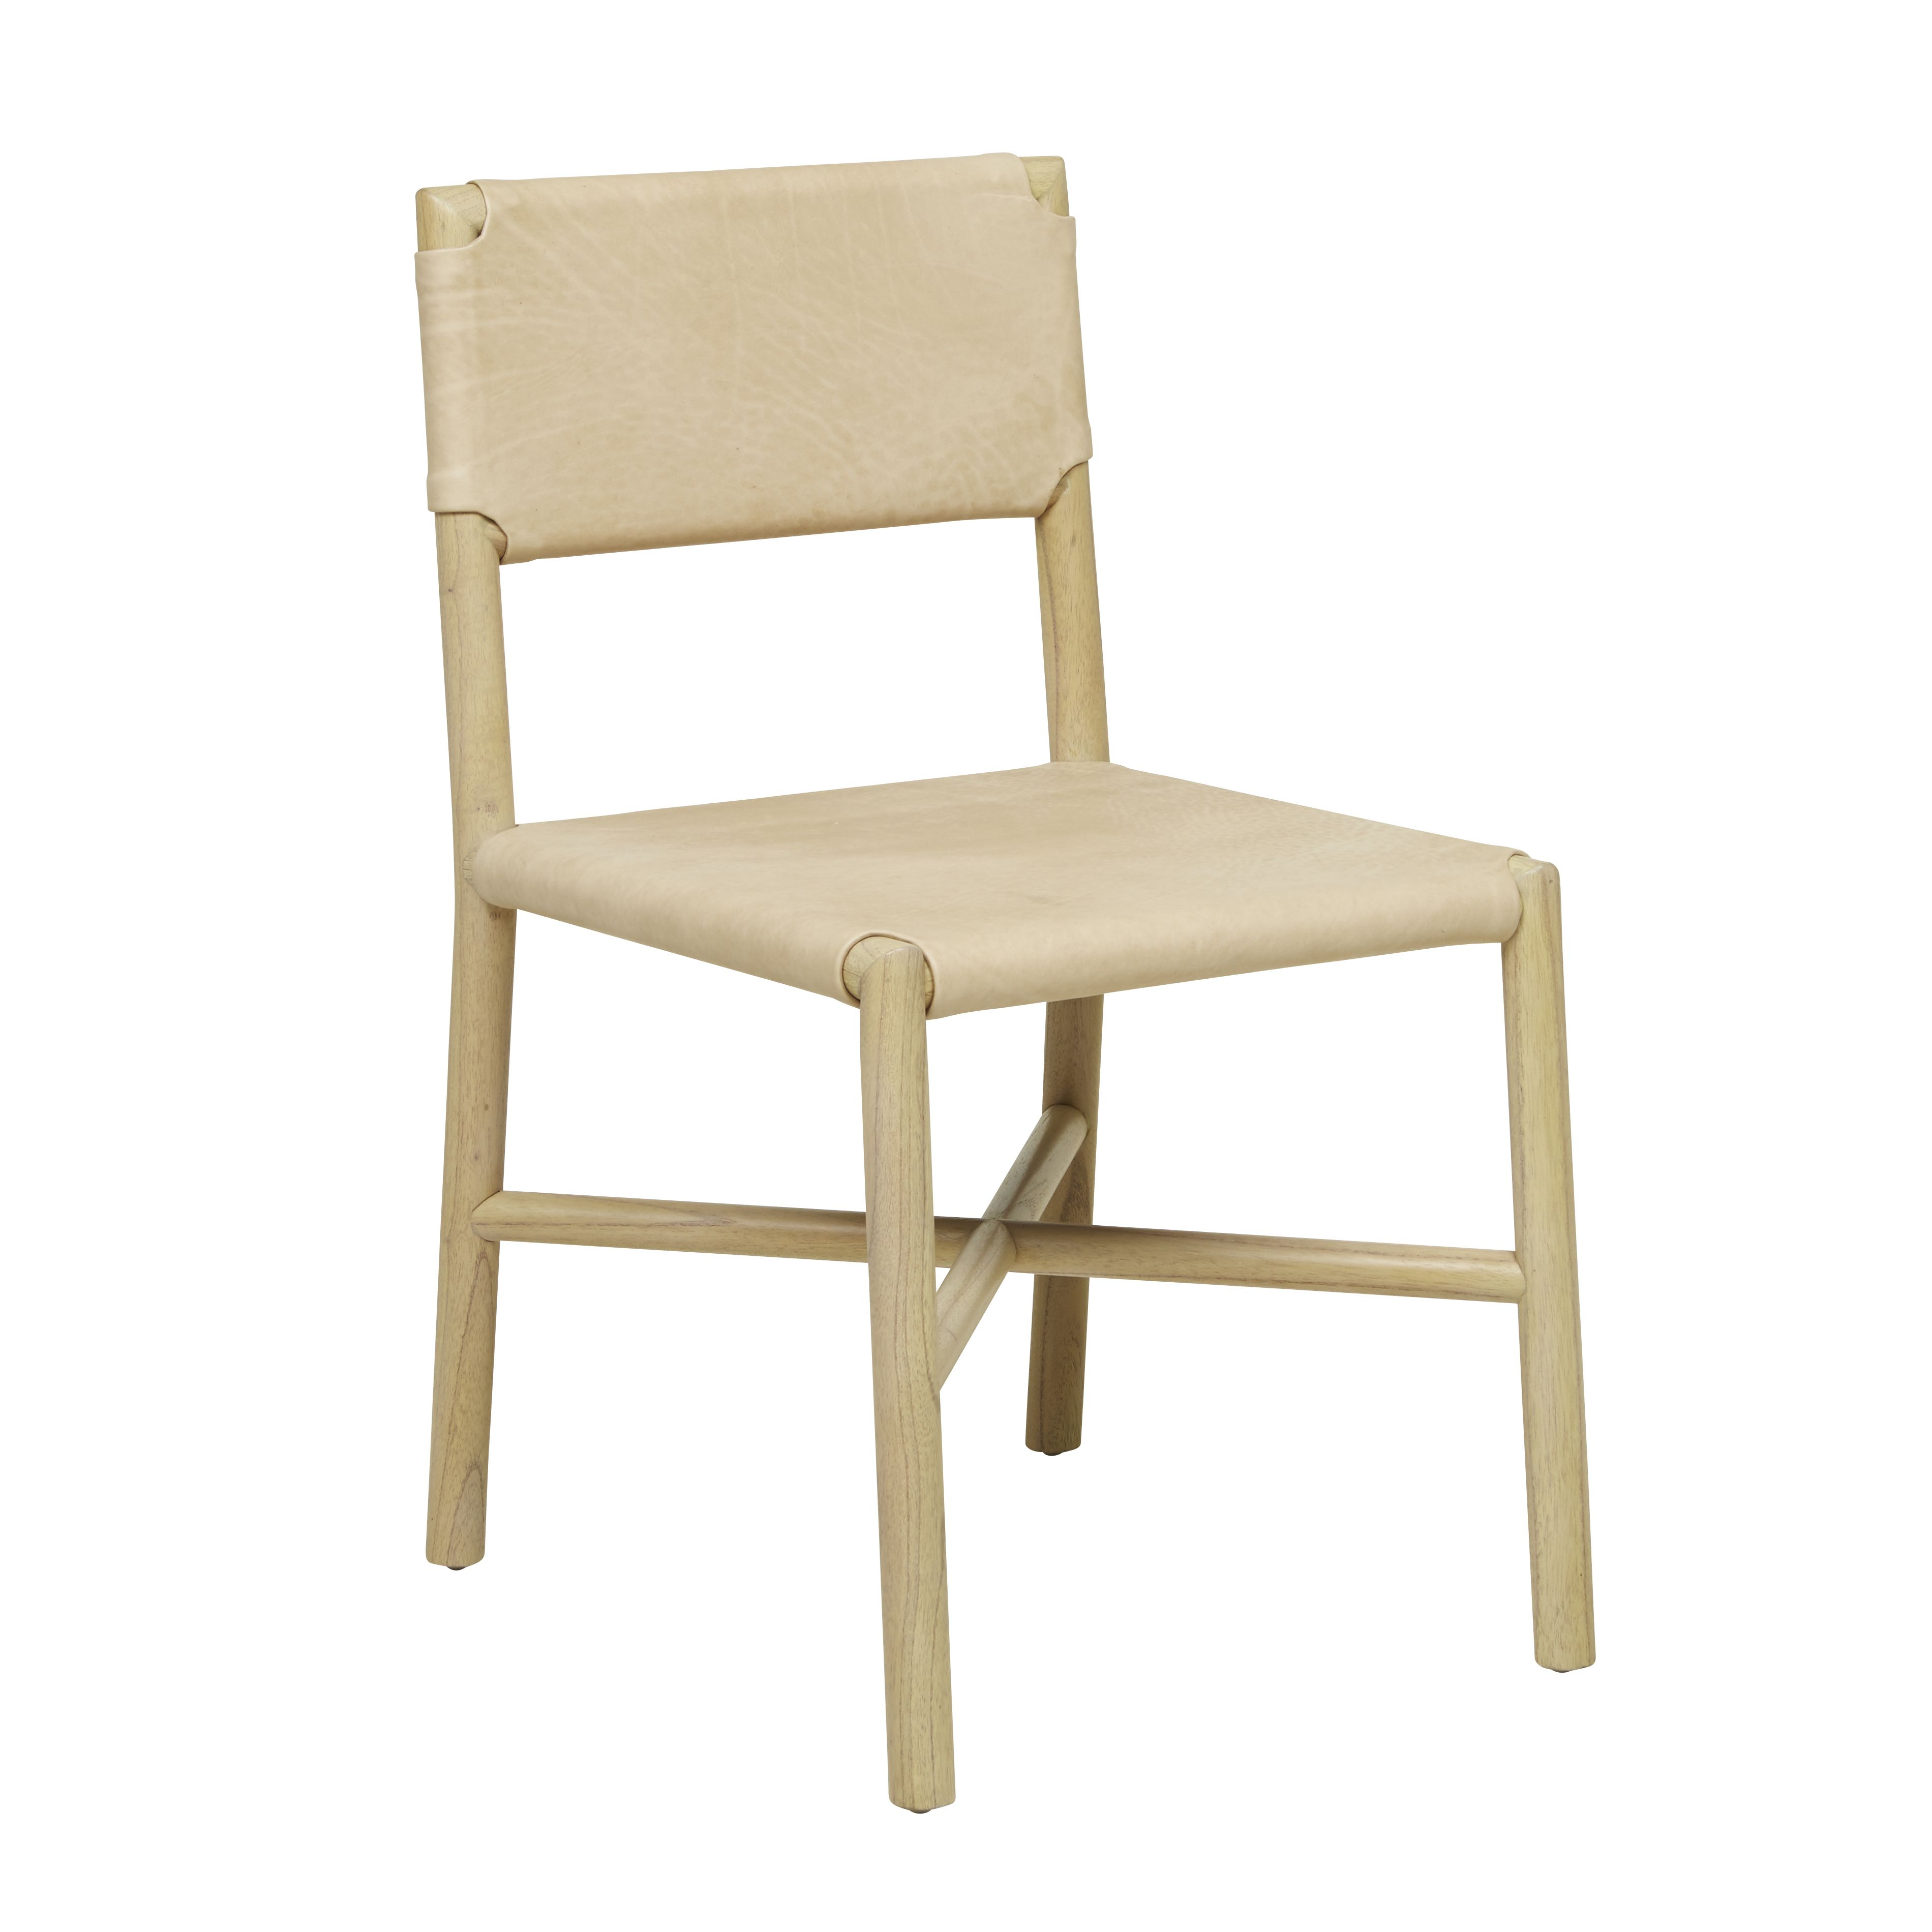 Leather dining chairs - Flat Leather Dining Chair